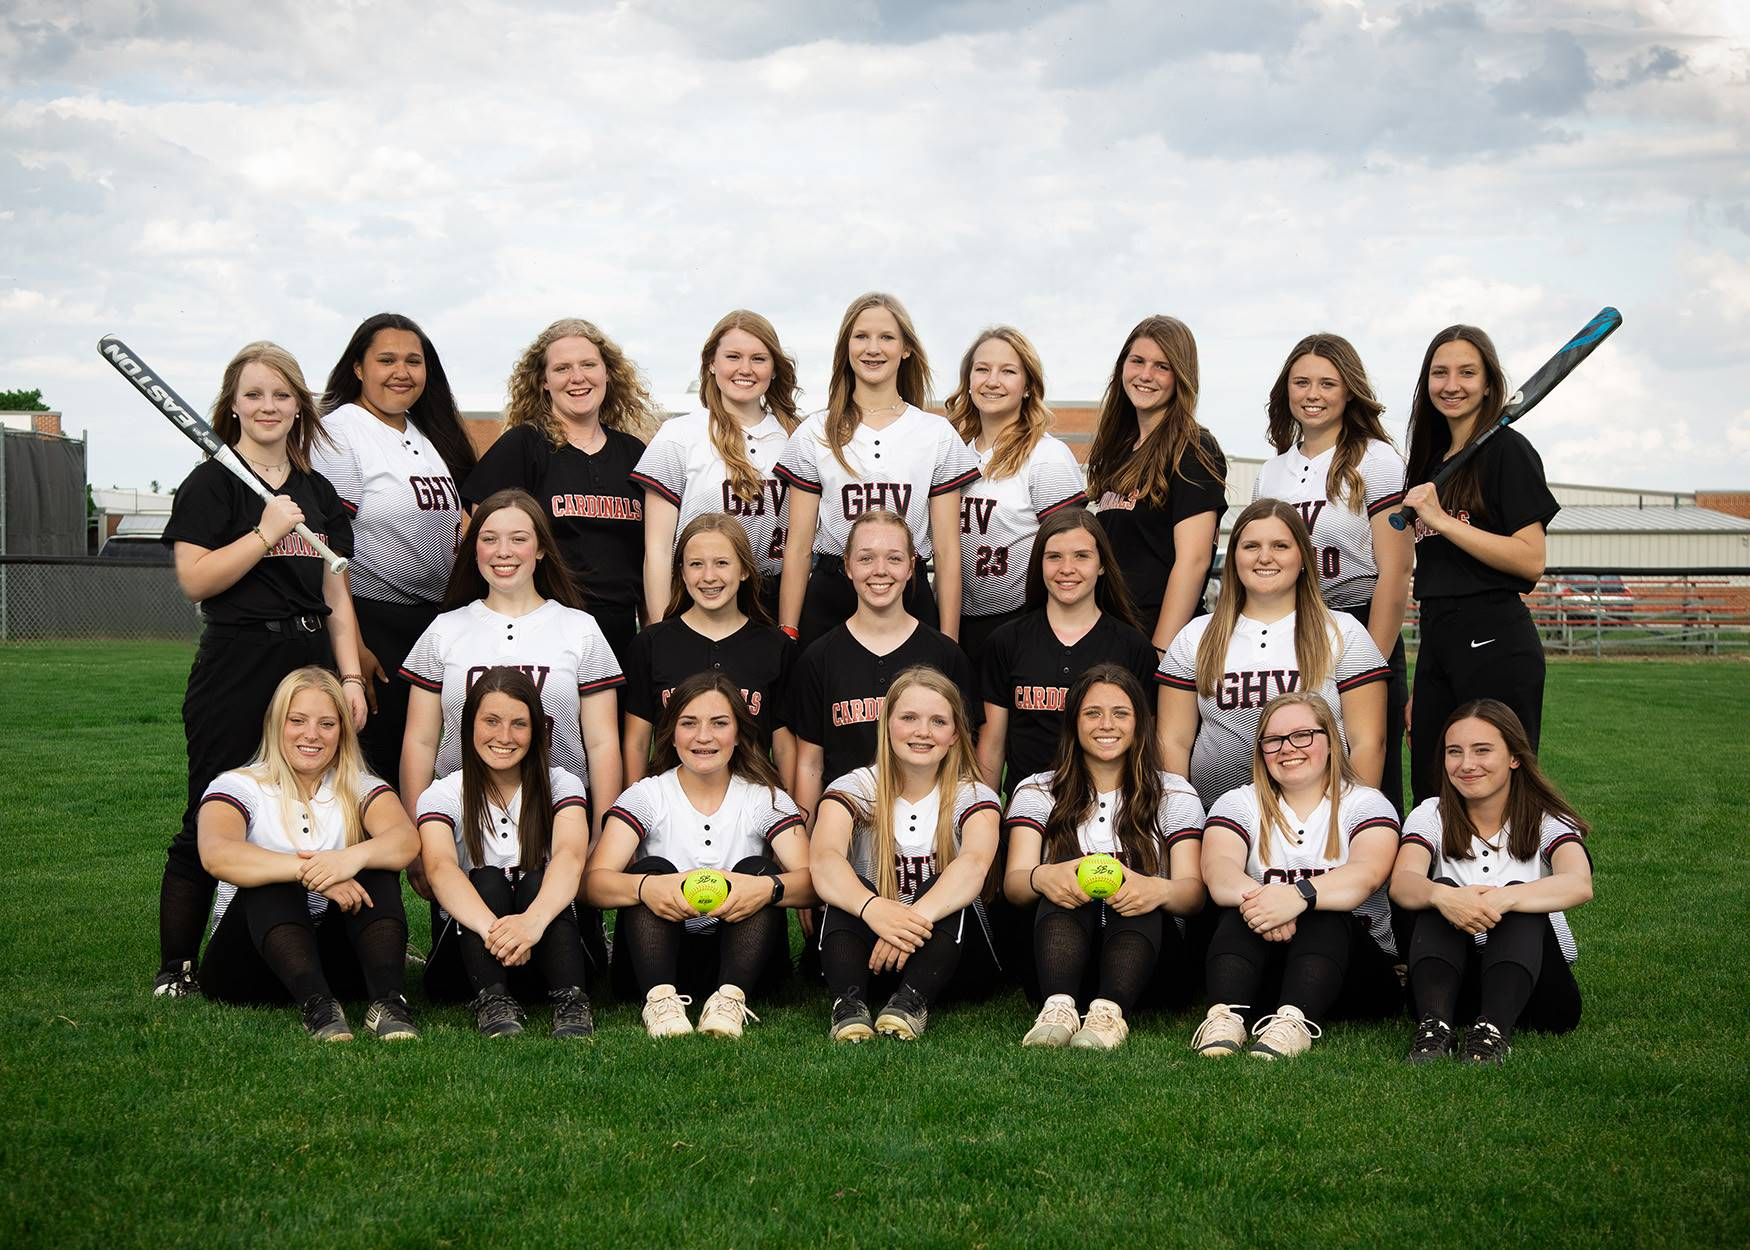 Girls softball players posing for a group photo